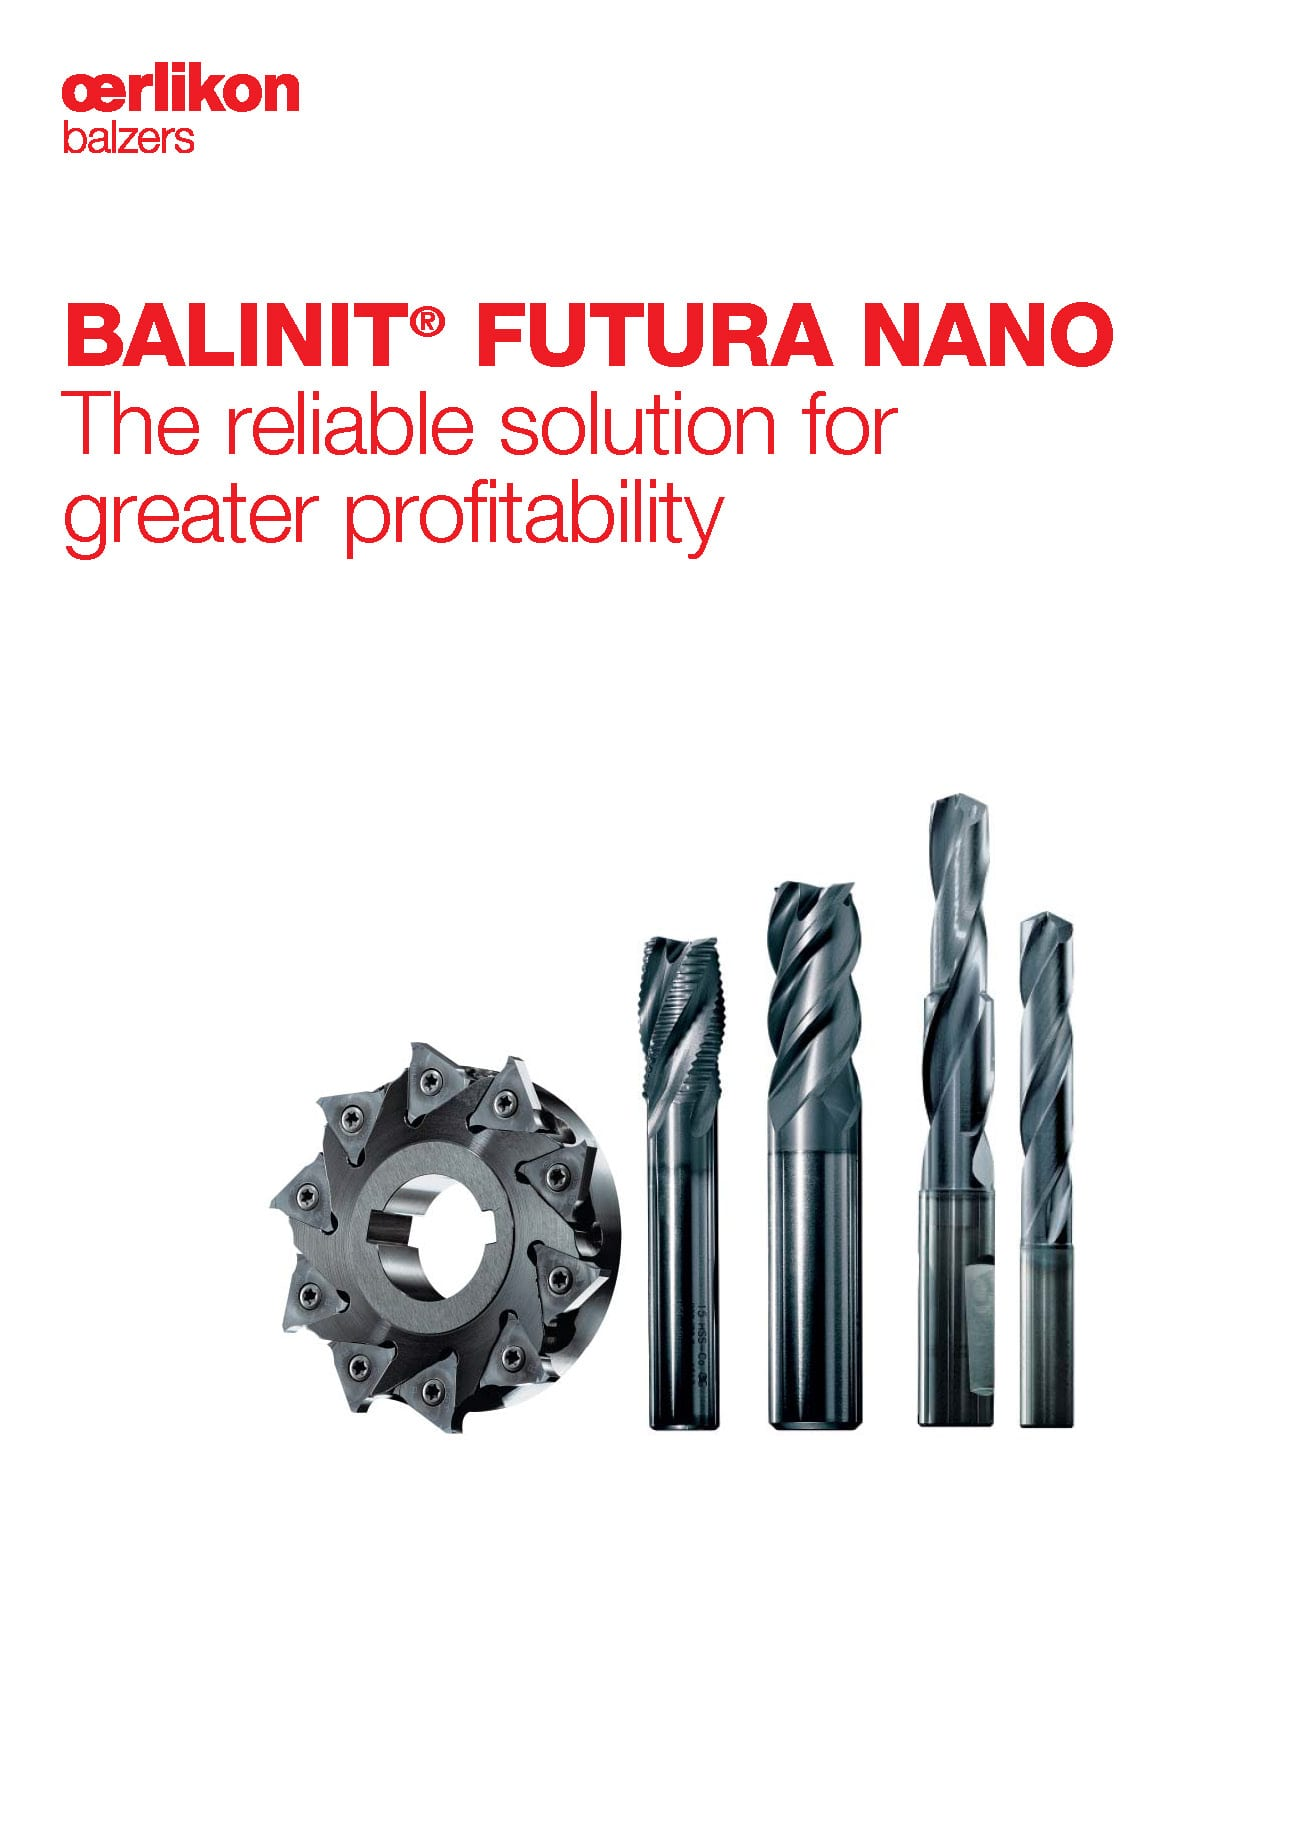 BALINIT® FUTURA NANO, Reliable solution for greater profitability